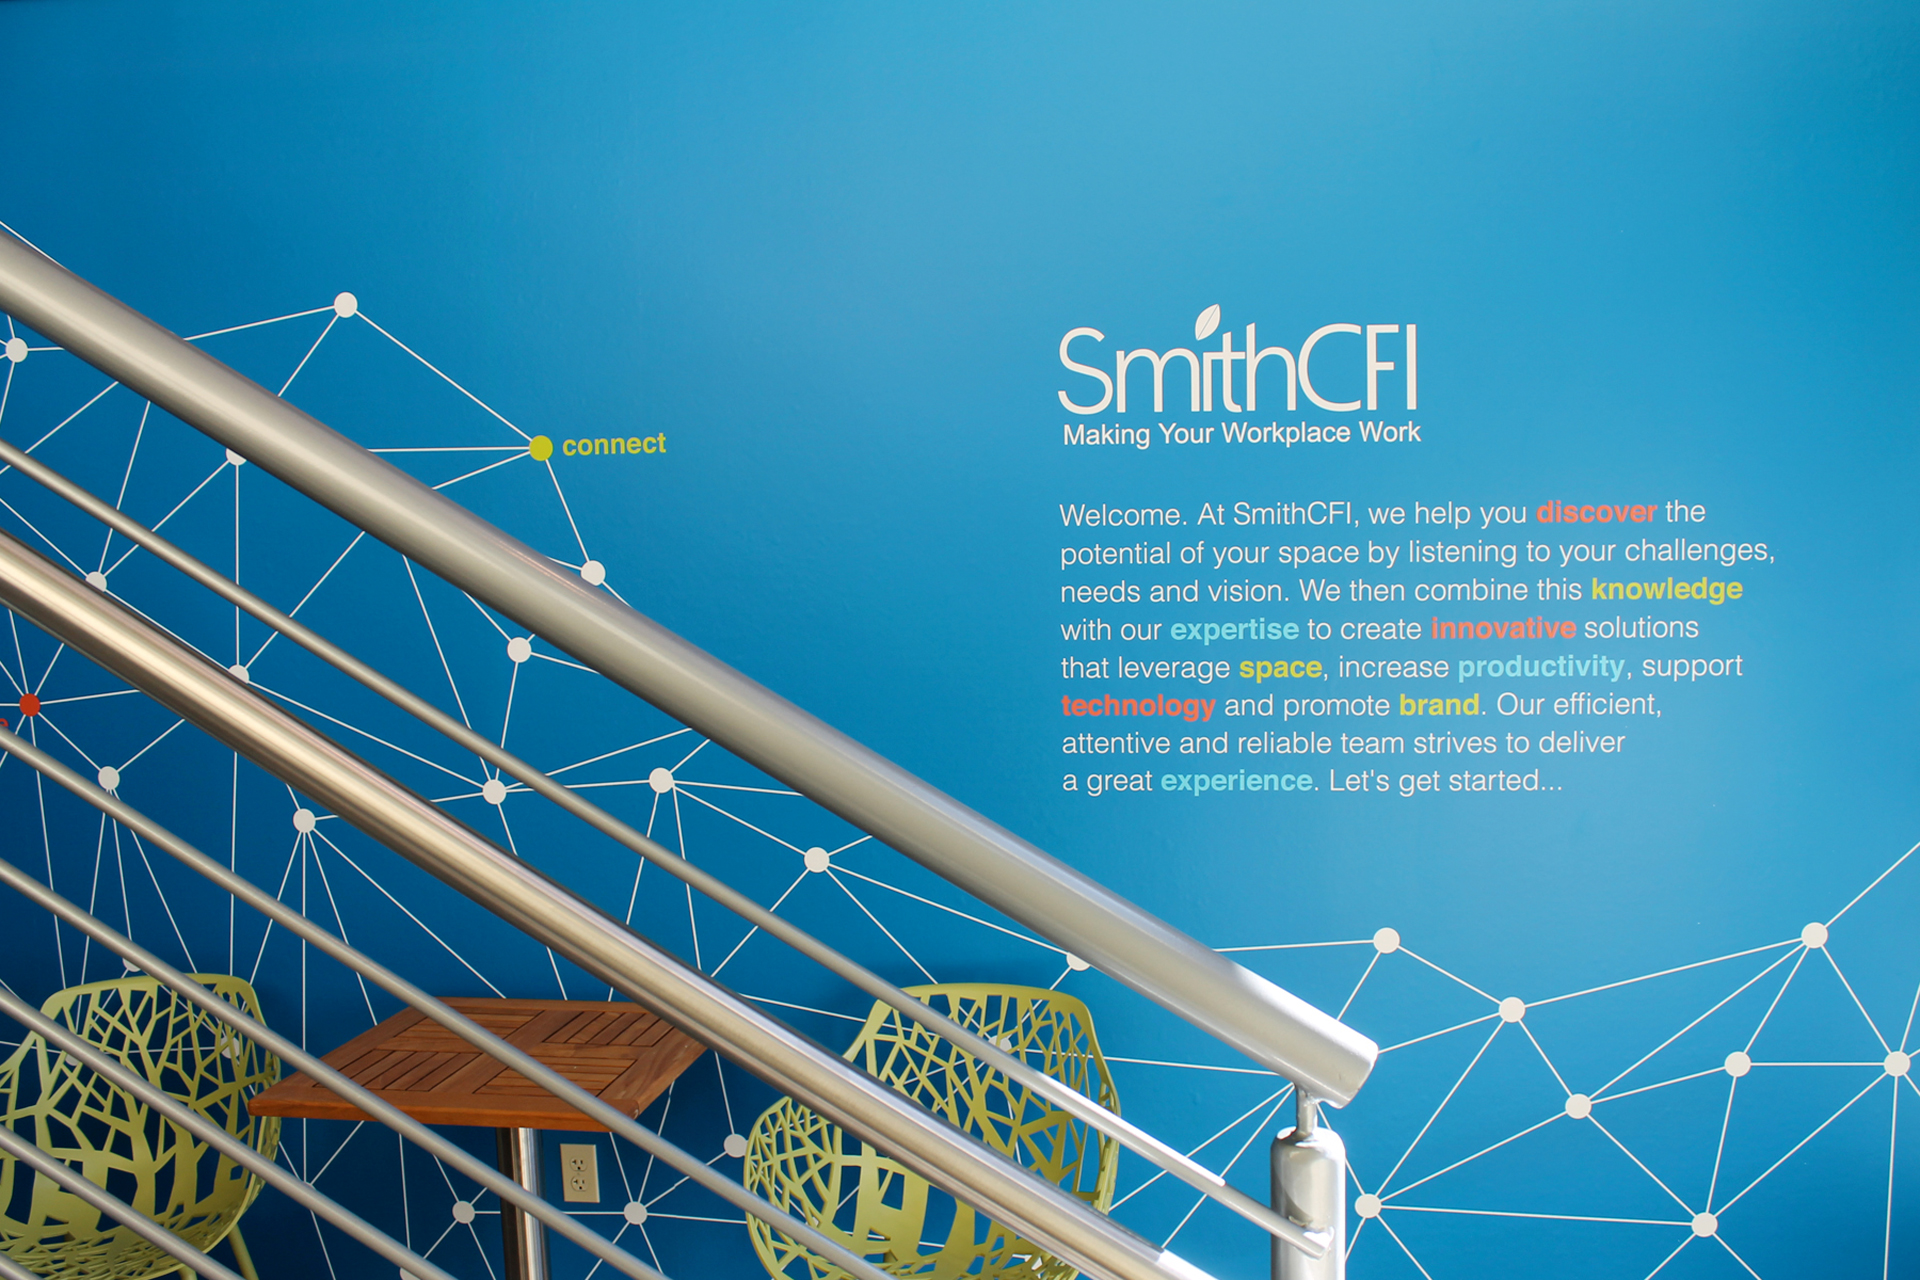 SmithCFI-showroom-6.jpg